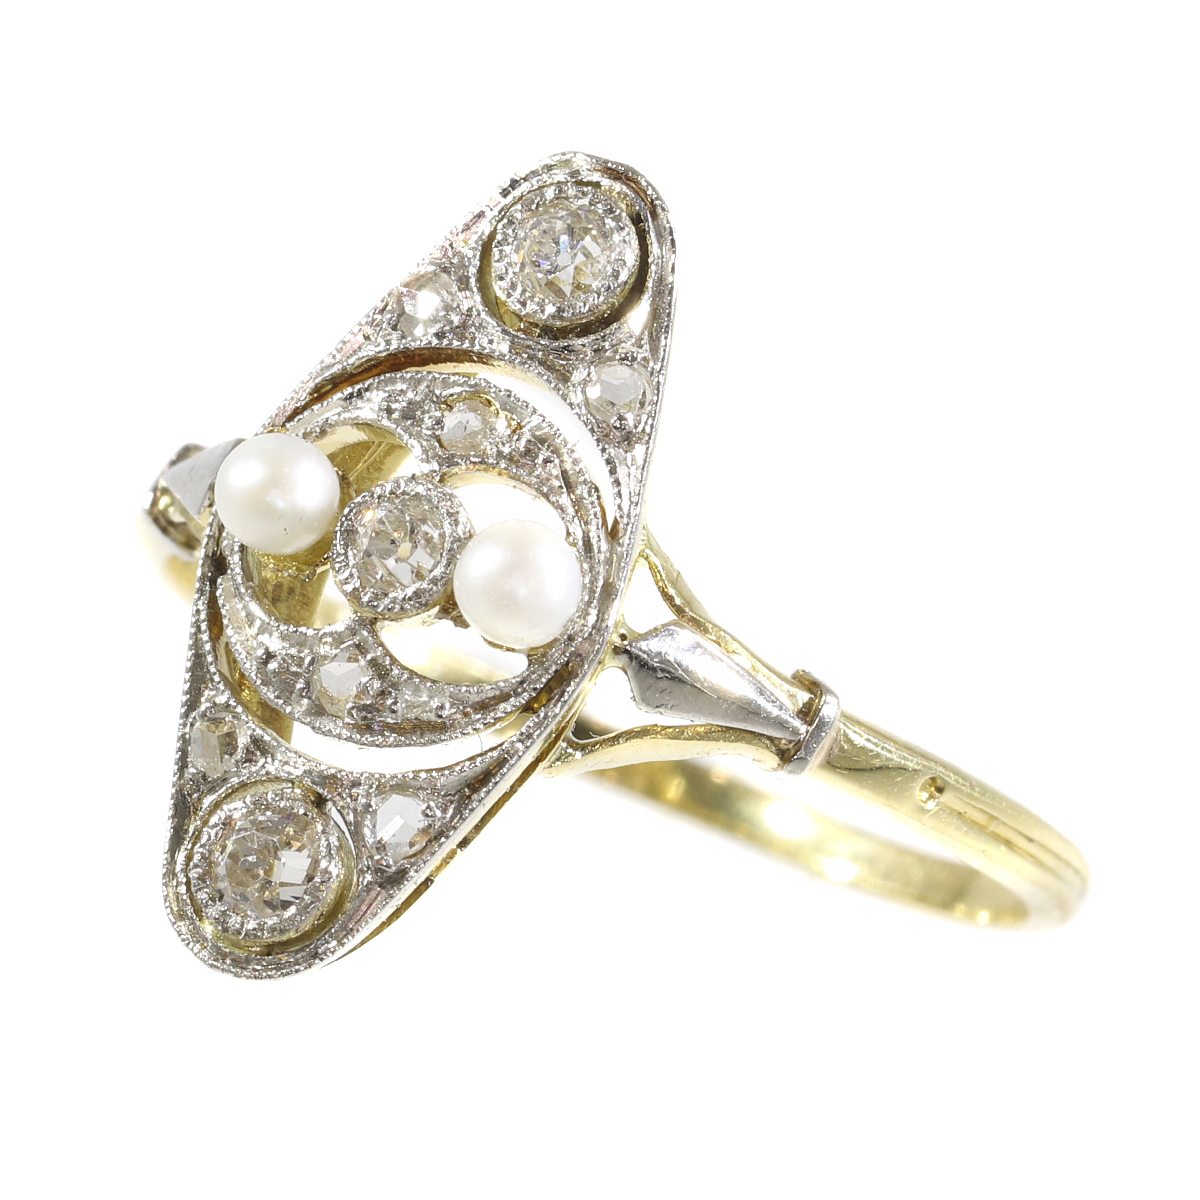 Vintage Edwardian diamond and pearl ring